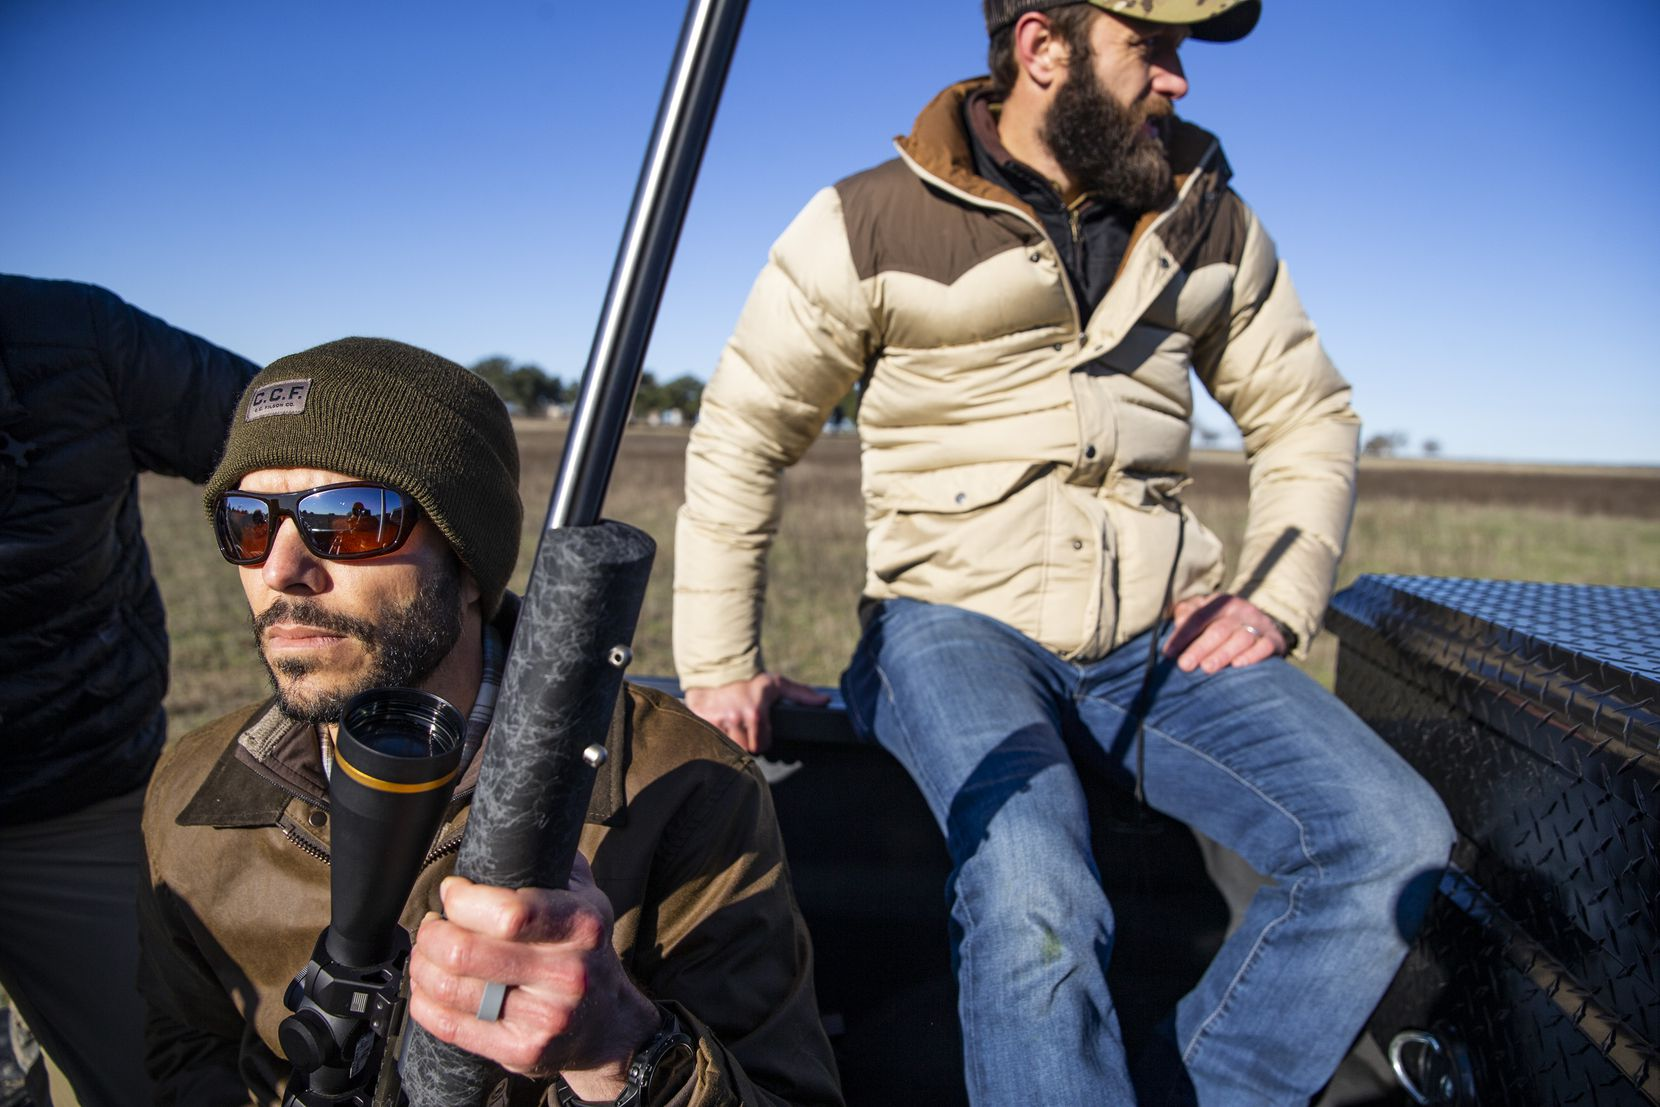 Robby Sansom (left), Co-Founder and CEO of Force of Nature Meats, rides out with Kirk Blanchard to harvest a bison at Roam Ranch in Fredericksburg, Texas, on Sunday, Jan. 19, 2020.